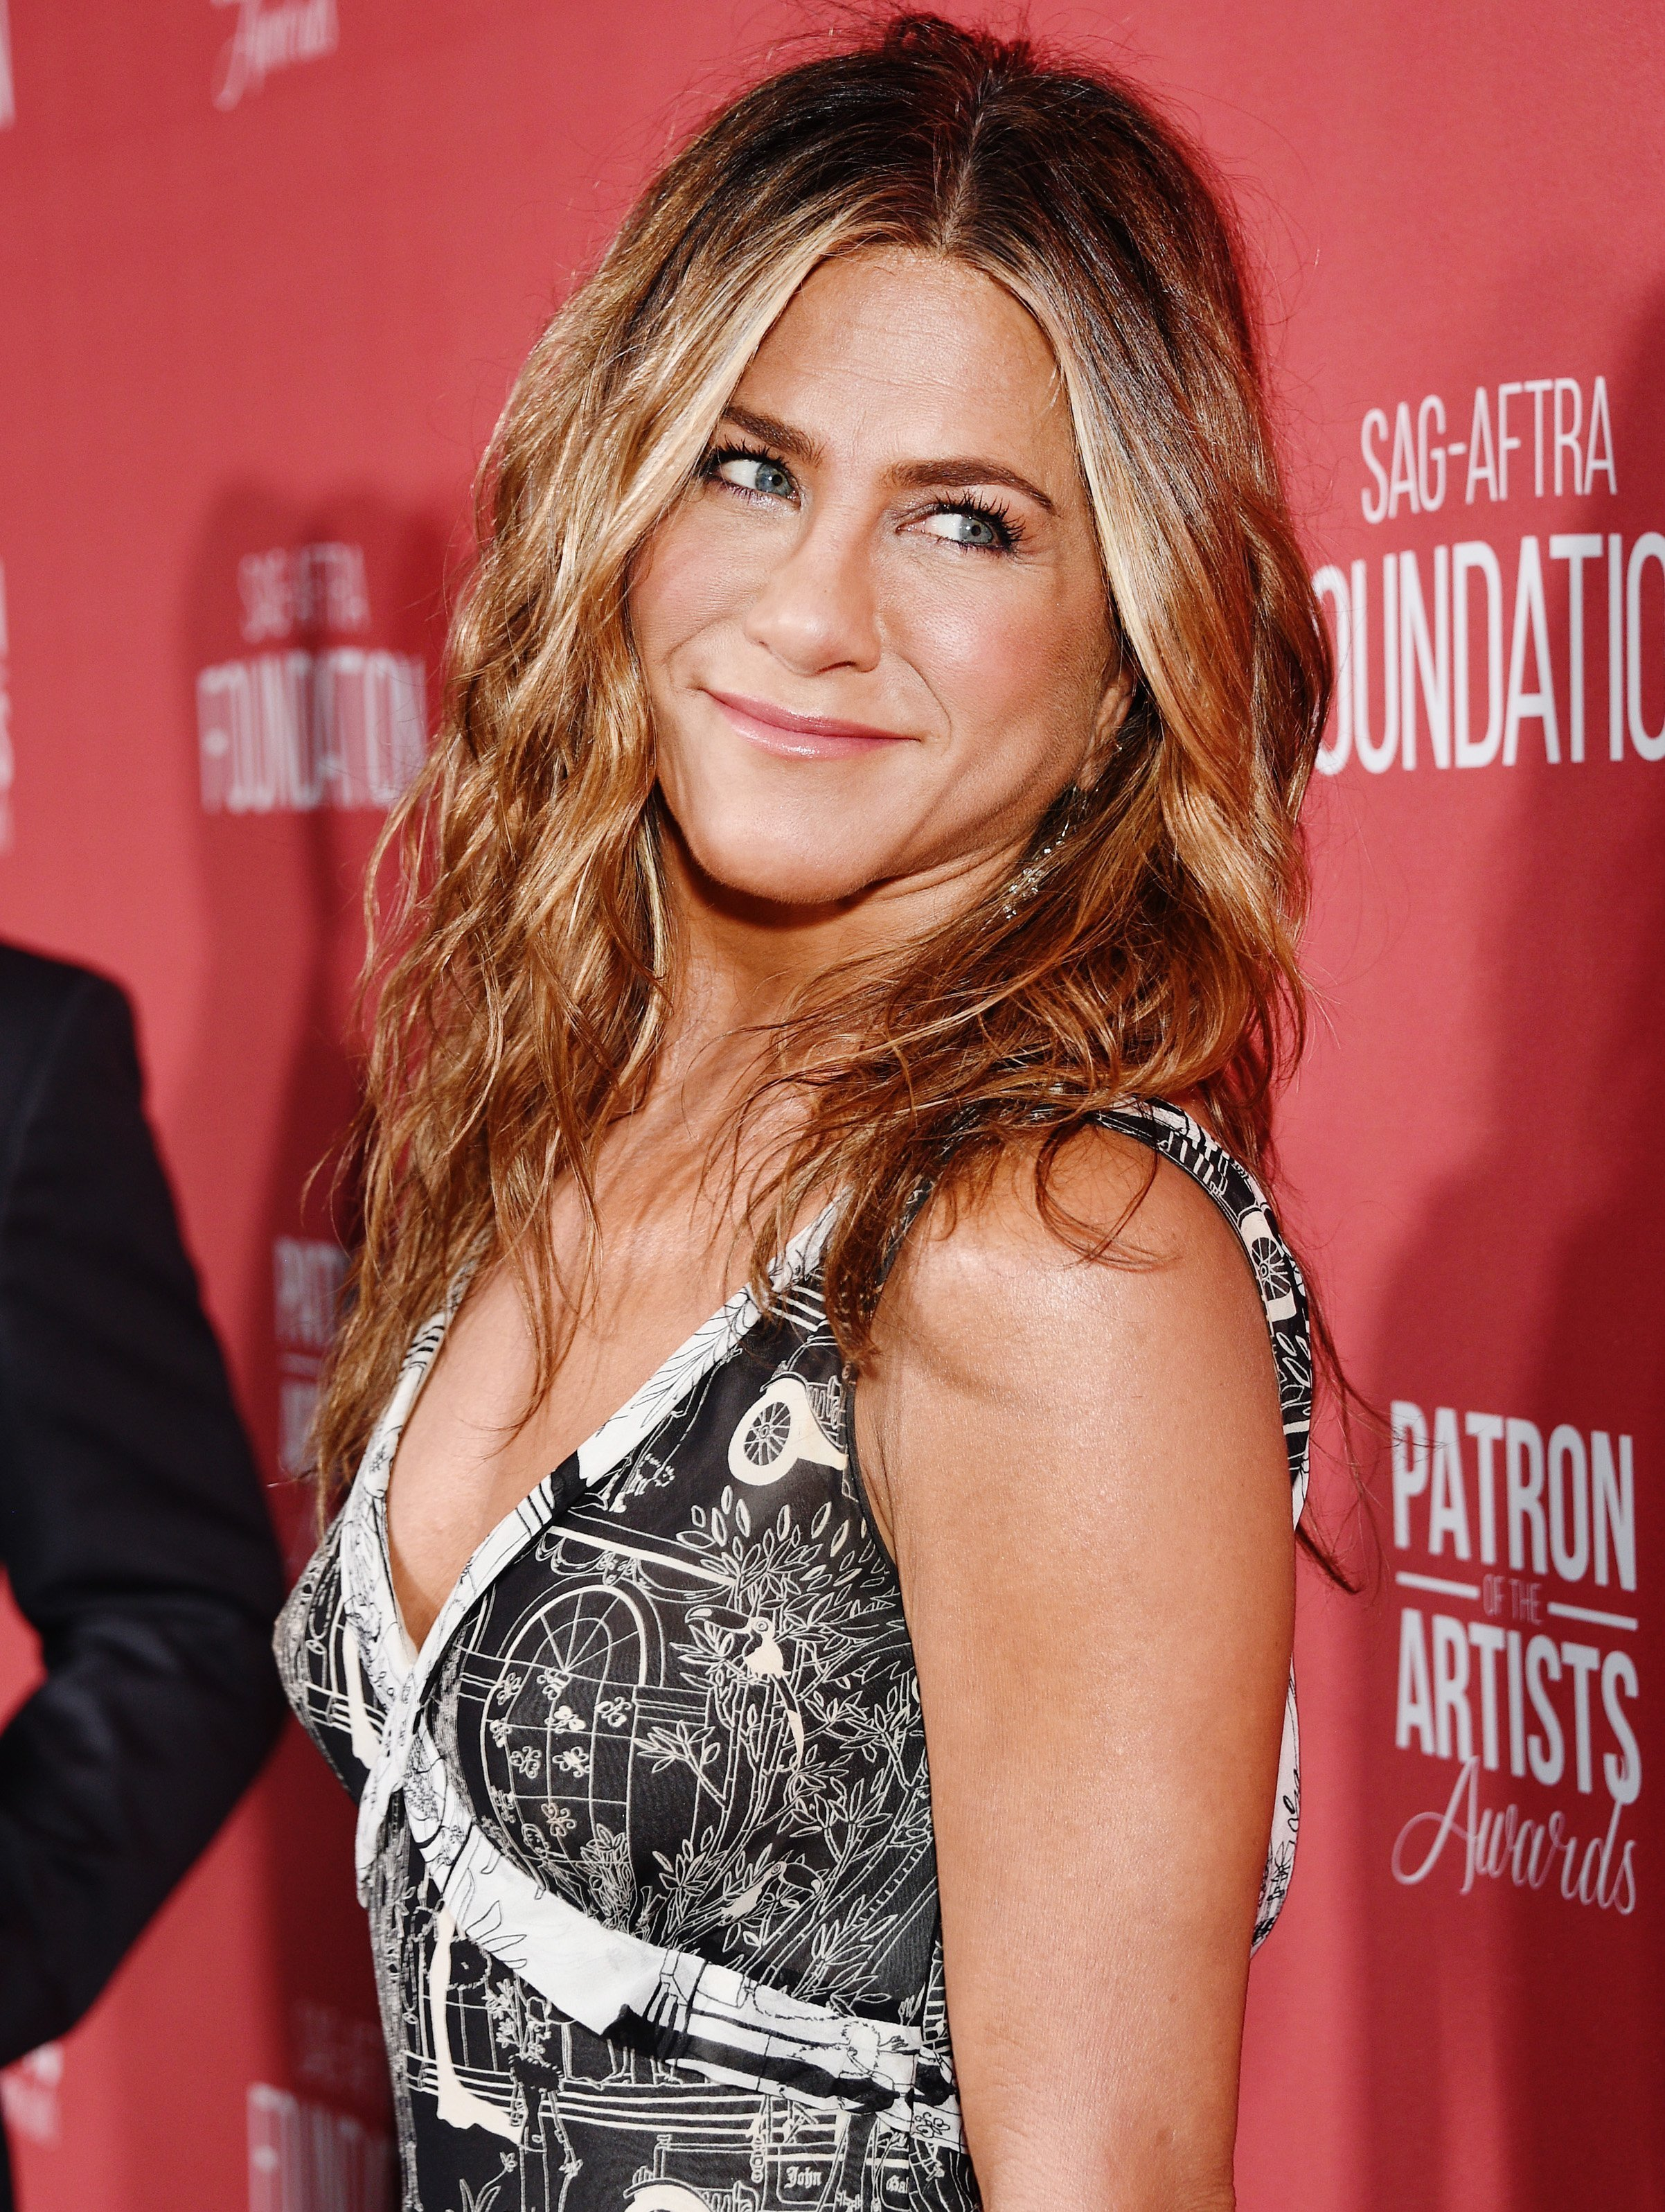 Jennifer Aniston attends SAG-AFTRA Foundation's 4th Annual Patron of the Artists Awards on November 07, 2019, in Beverly Hills, California. | Source: Getty Images.